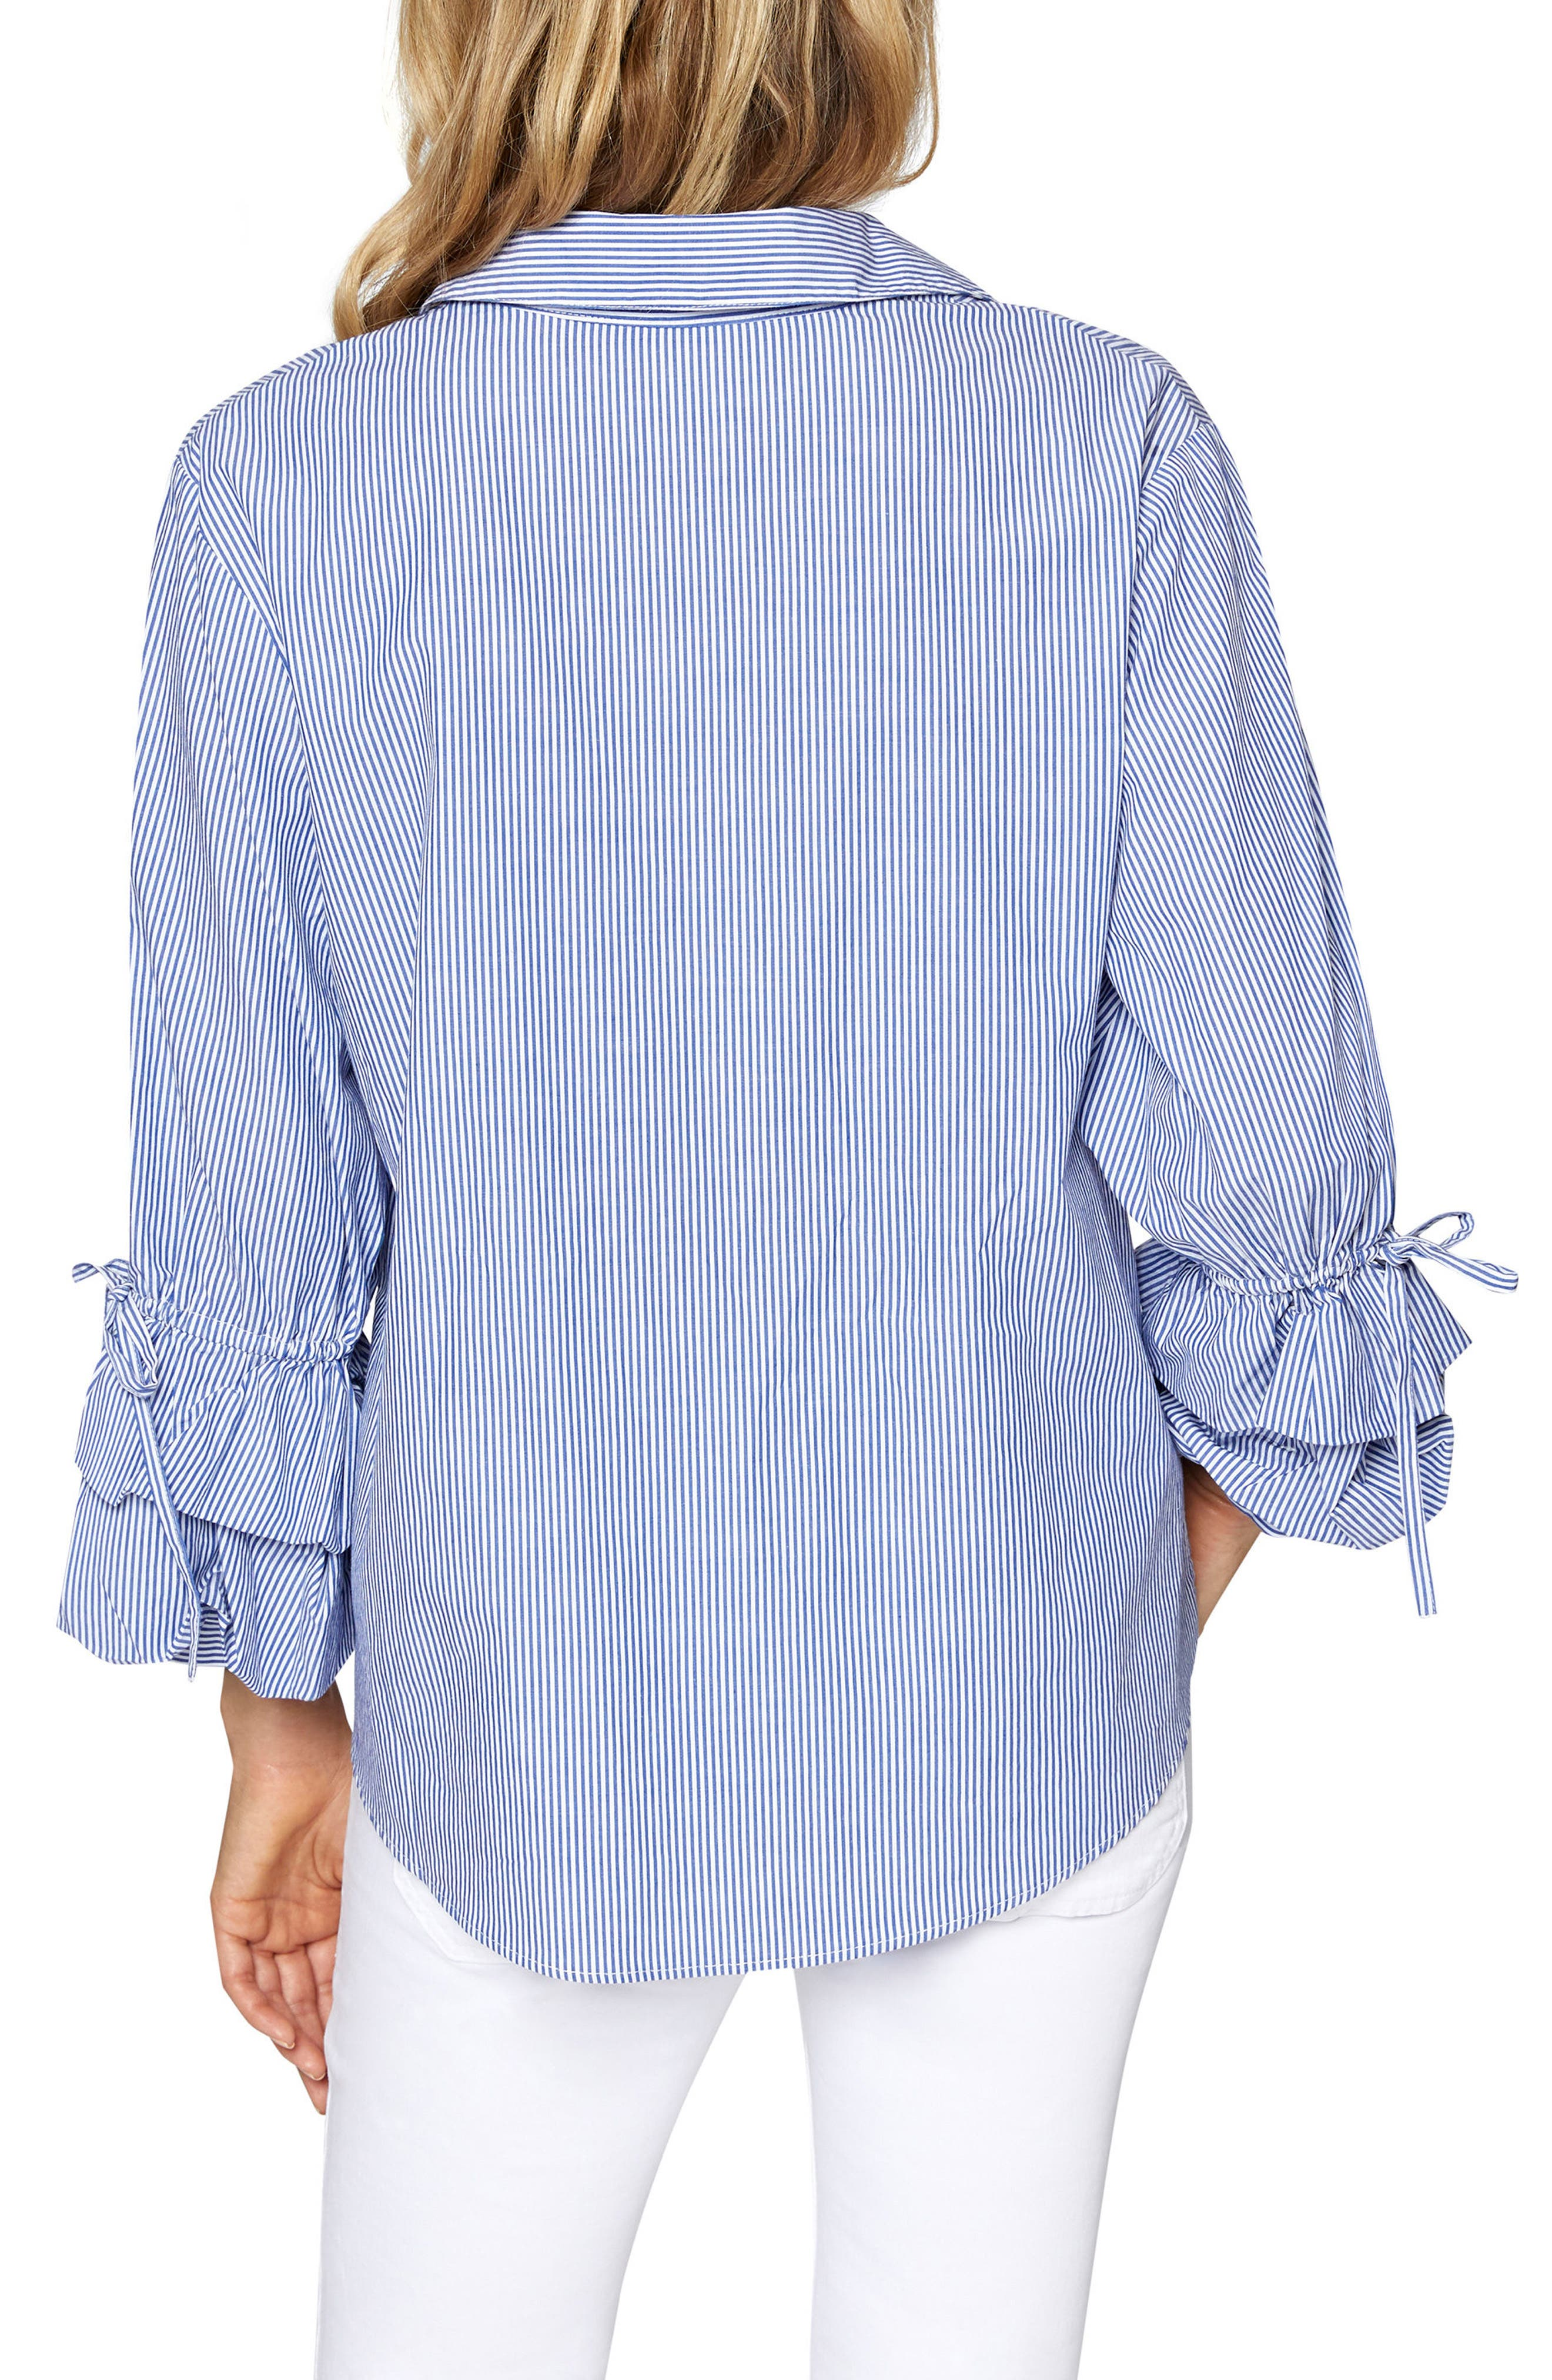 Frankie Ruffle Sleeve Shirt,                             Alternate thumbnail 2, color,                             422